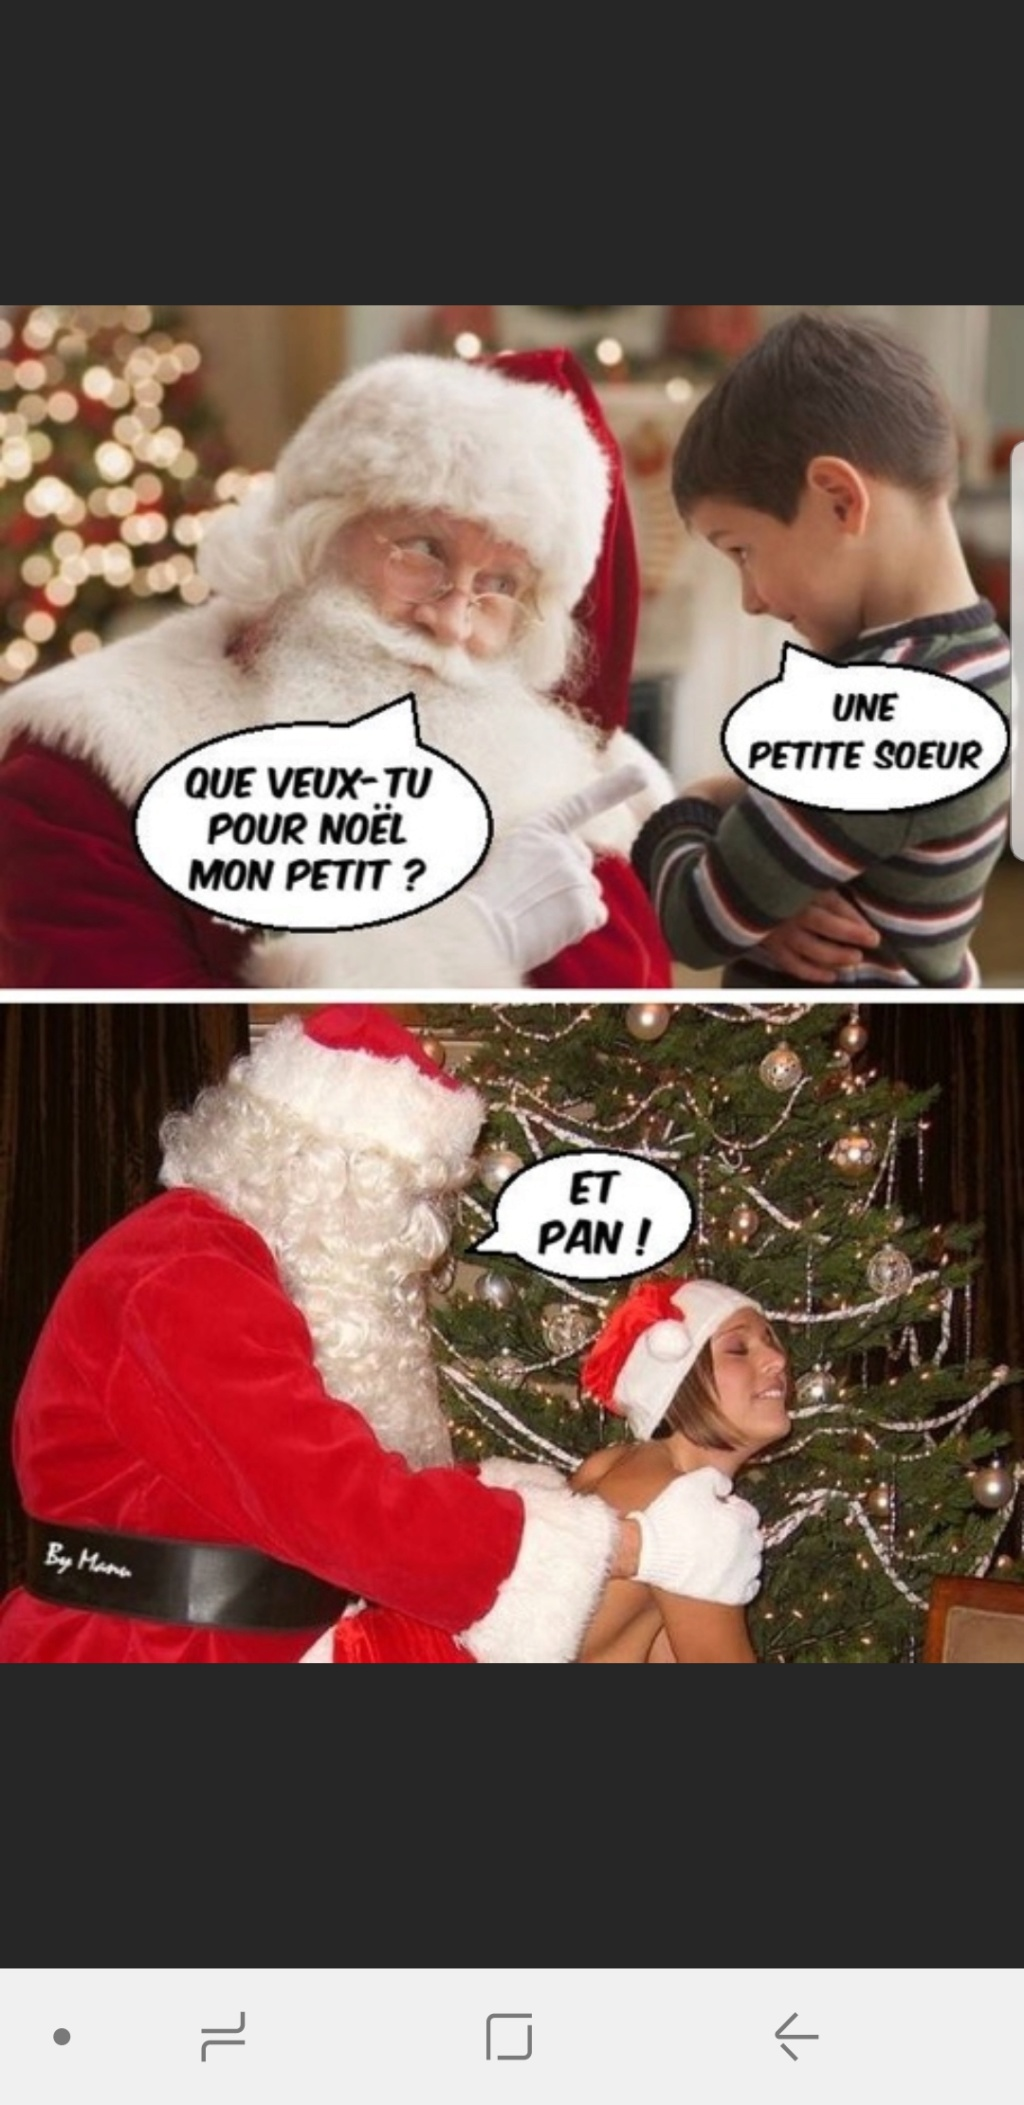 Humour en image du Forum Passion-Harley  ... - Page 40 Screen10